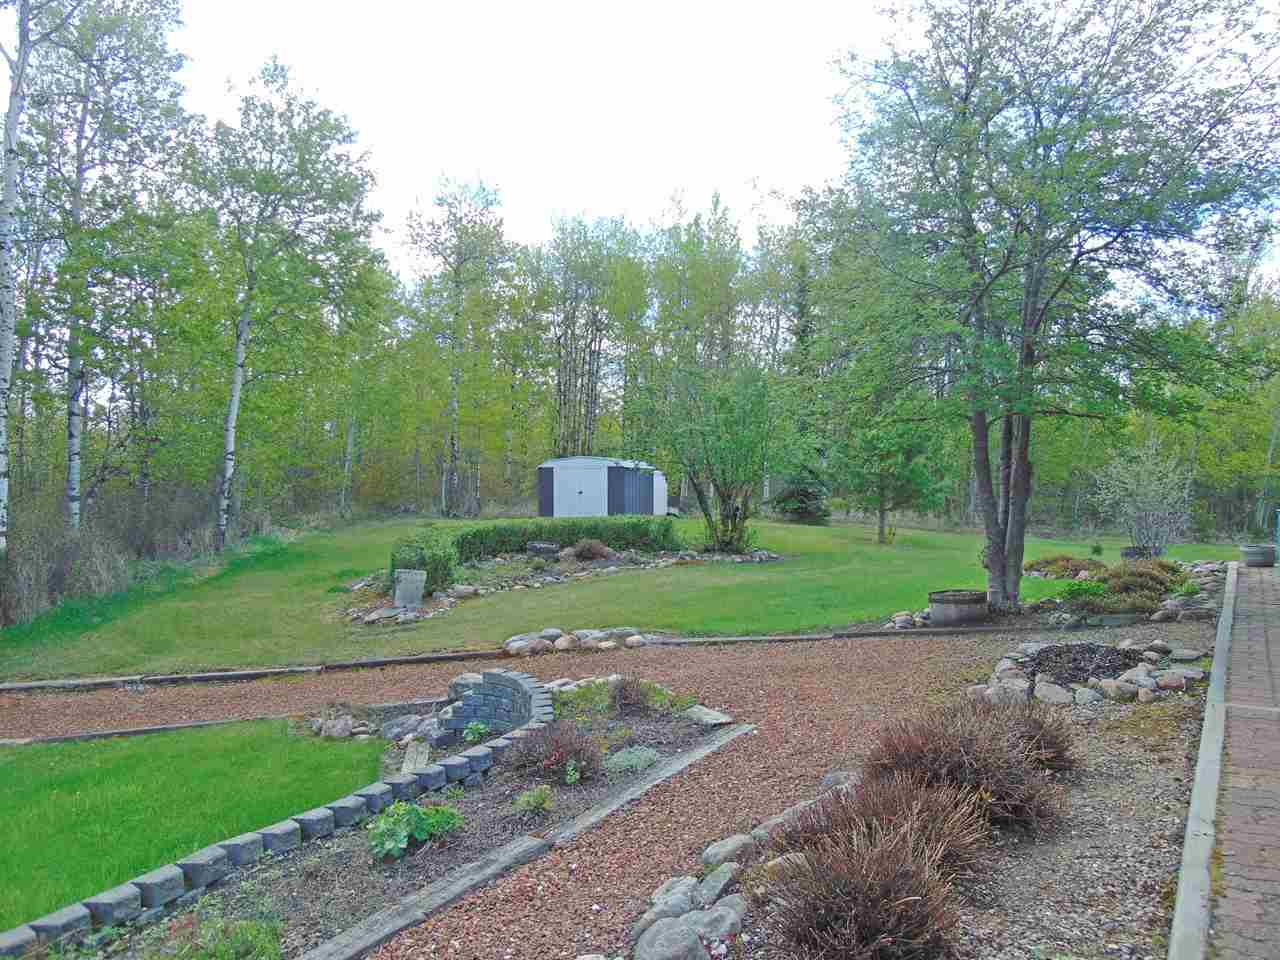 Photo 25: 57130 Rg Rd 230: Rural Sturgeon County House for sale : MLS(r) # E4064722